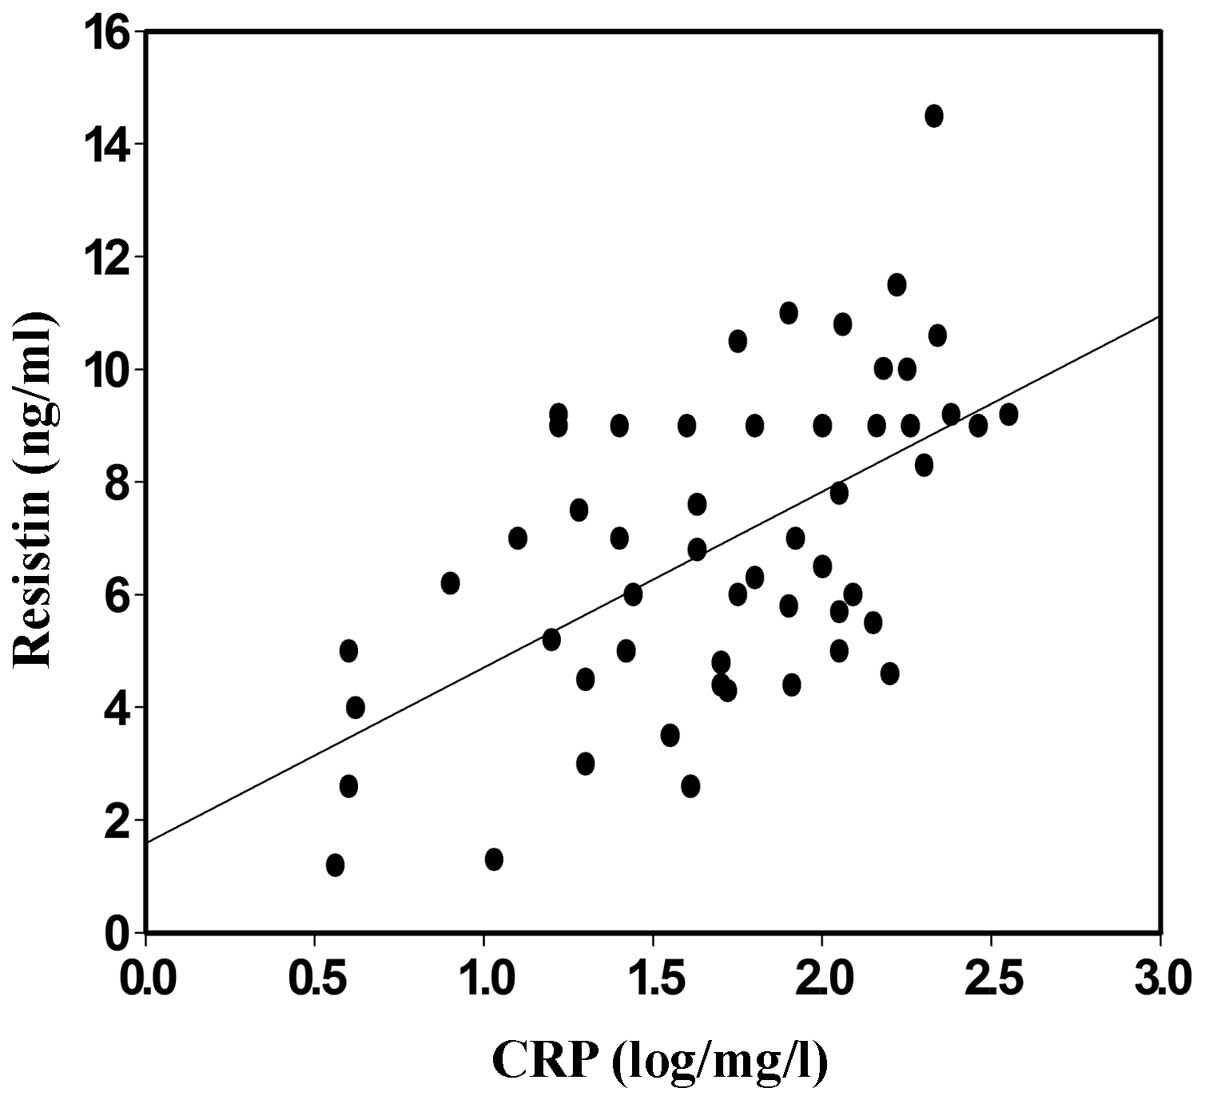 analysis of the correlation between serum resistin and the variability of erythropoietin